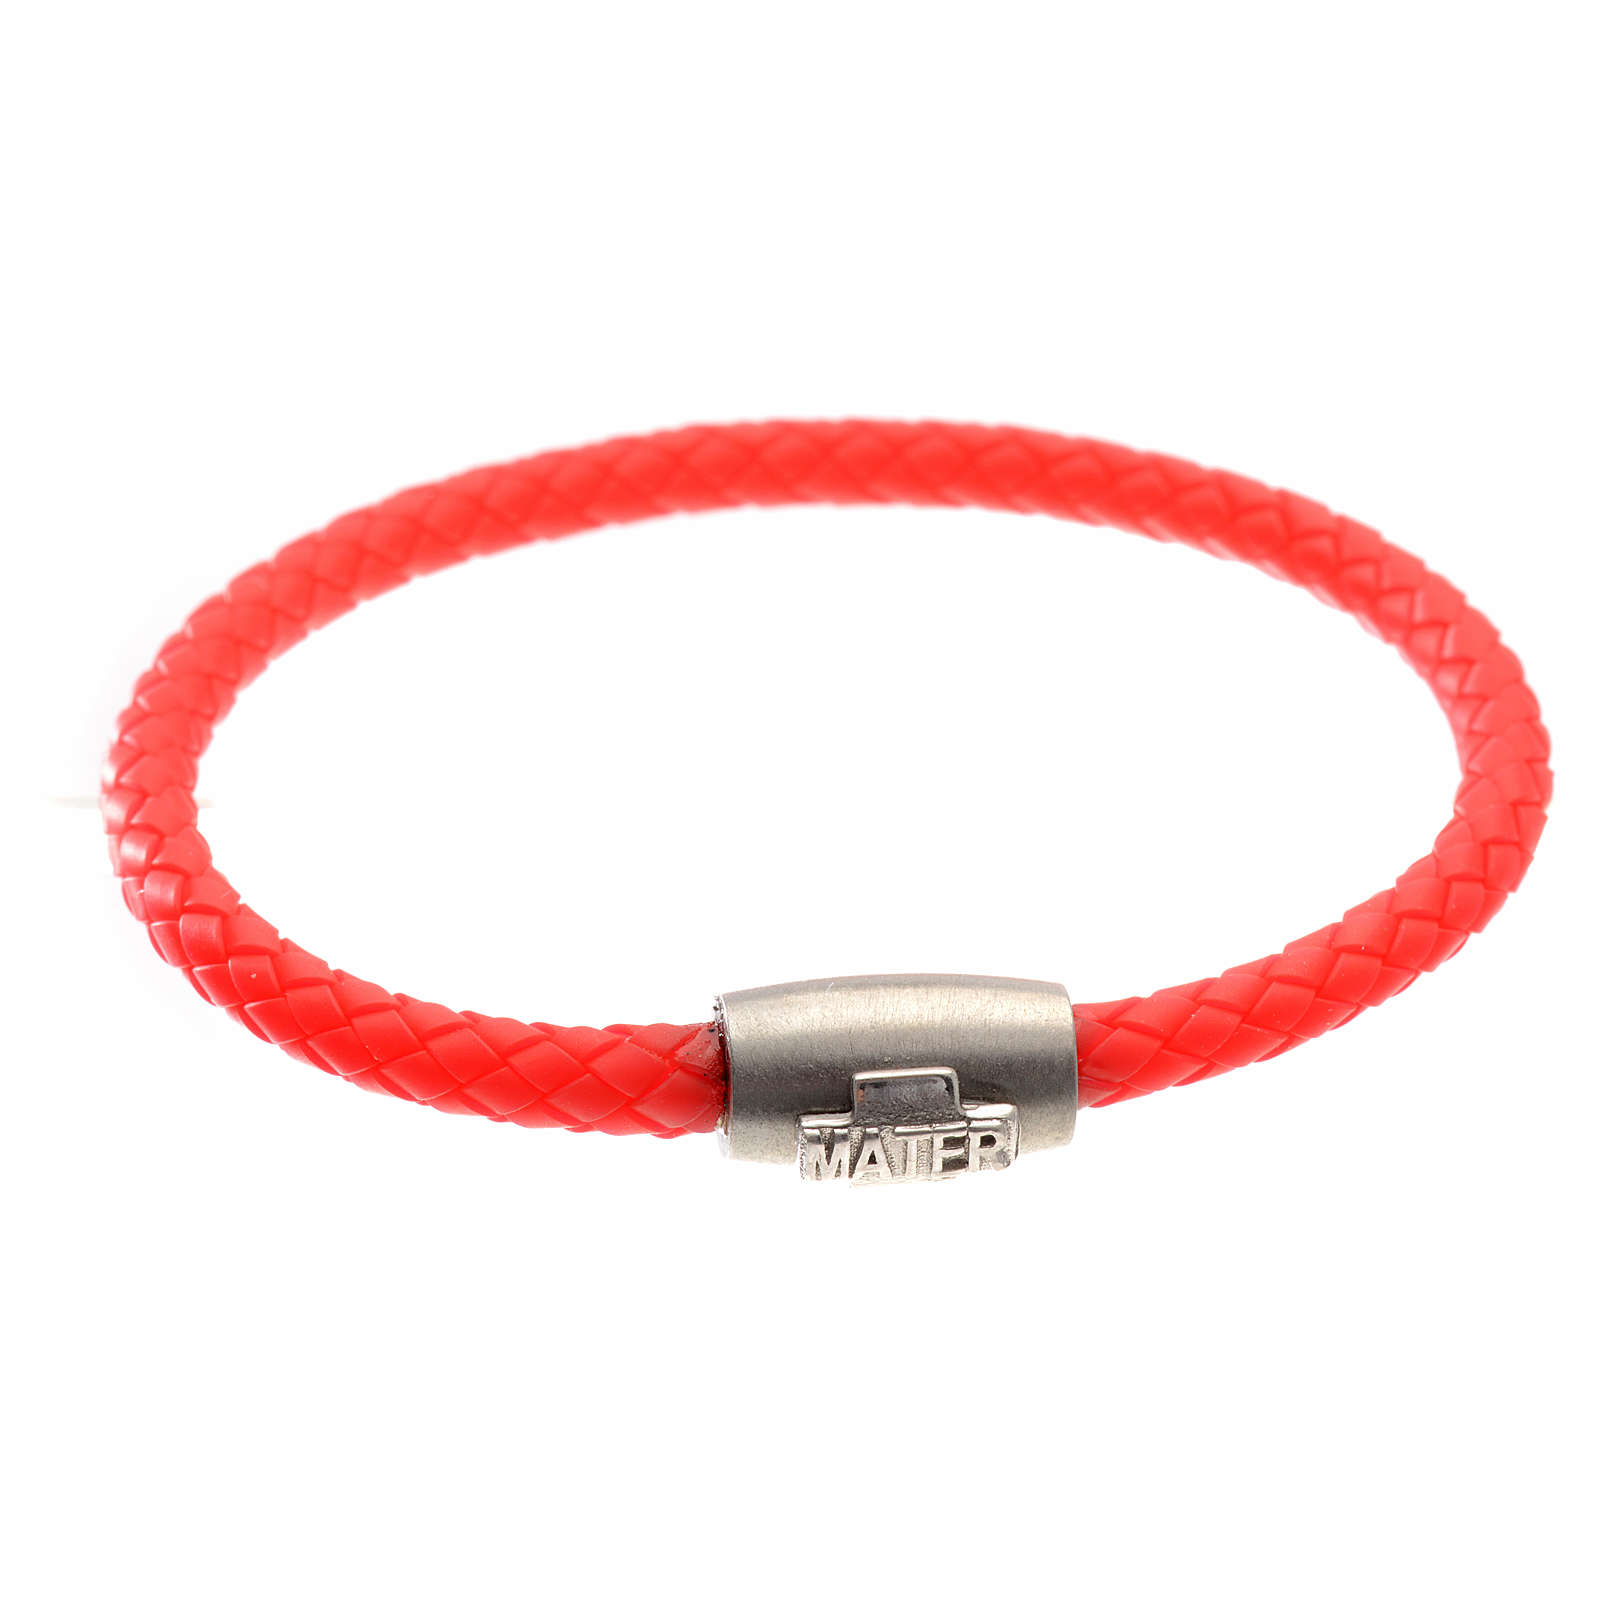 Bracelet in red leather with silver cross, MATER jewels 4